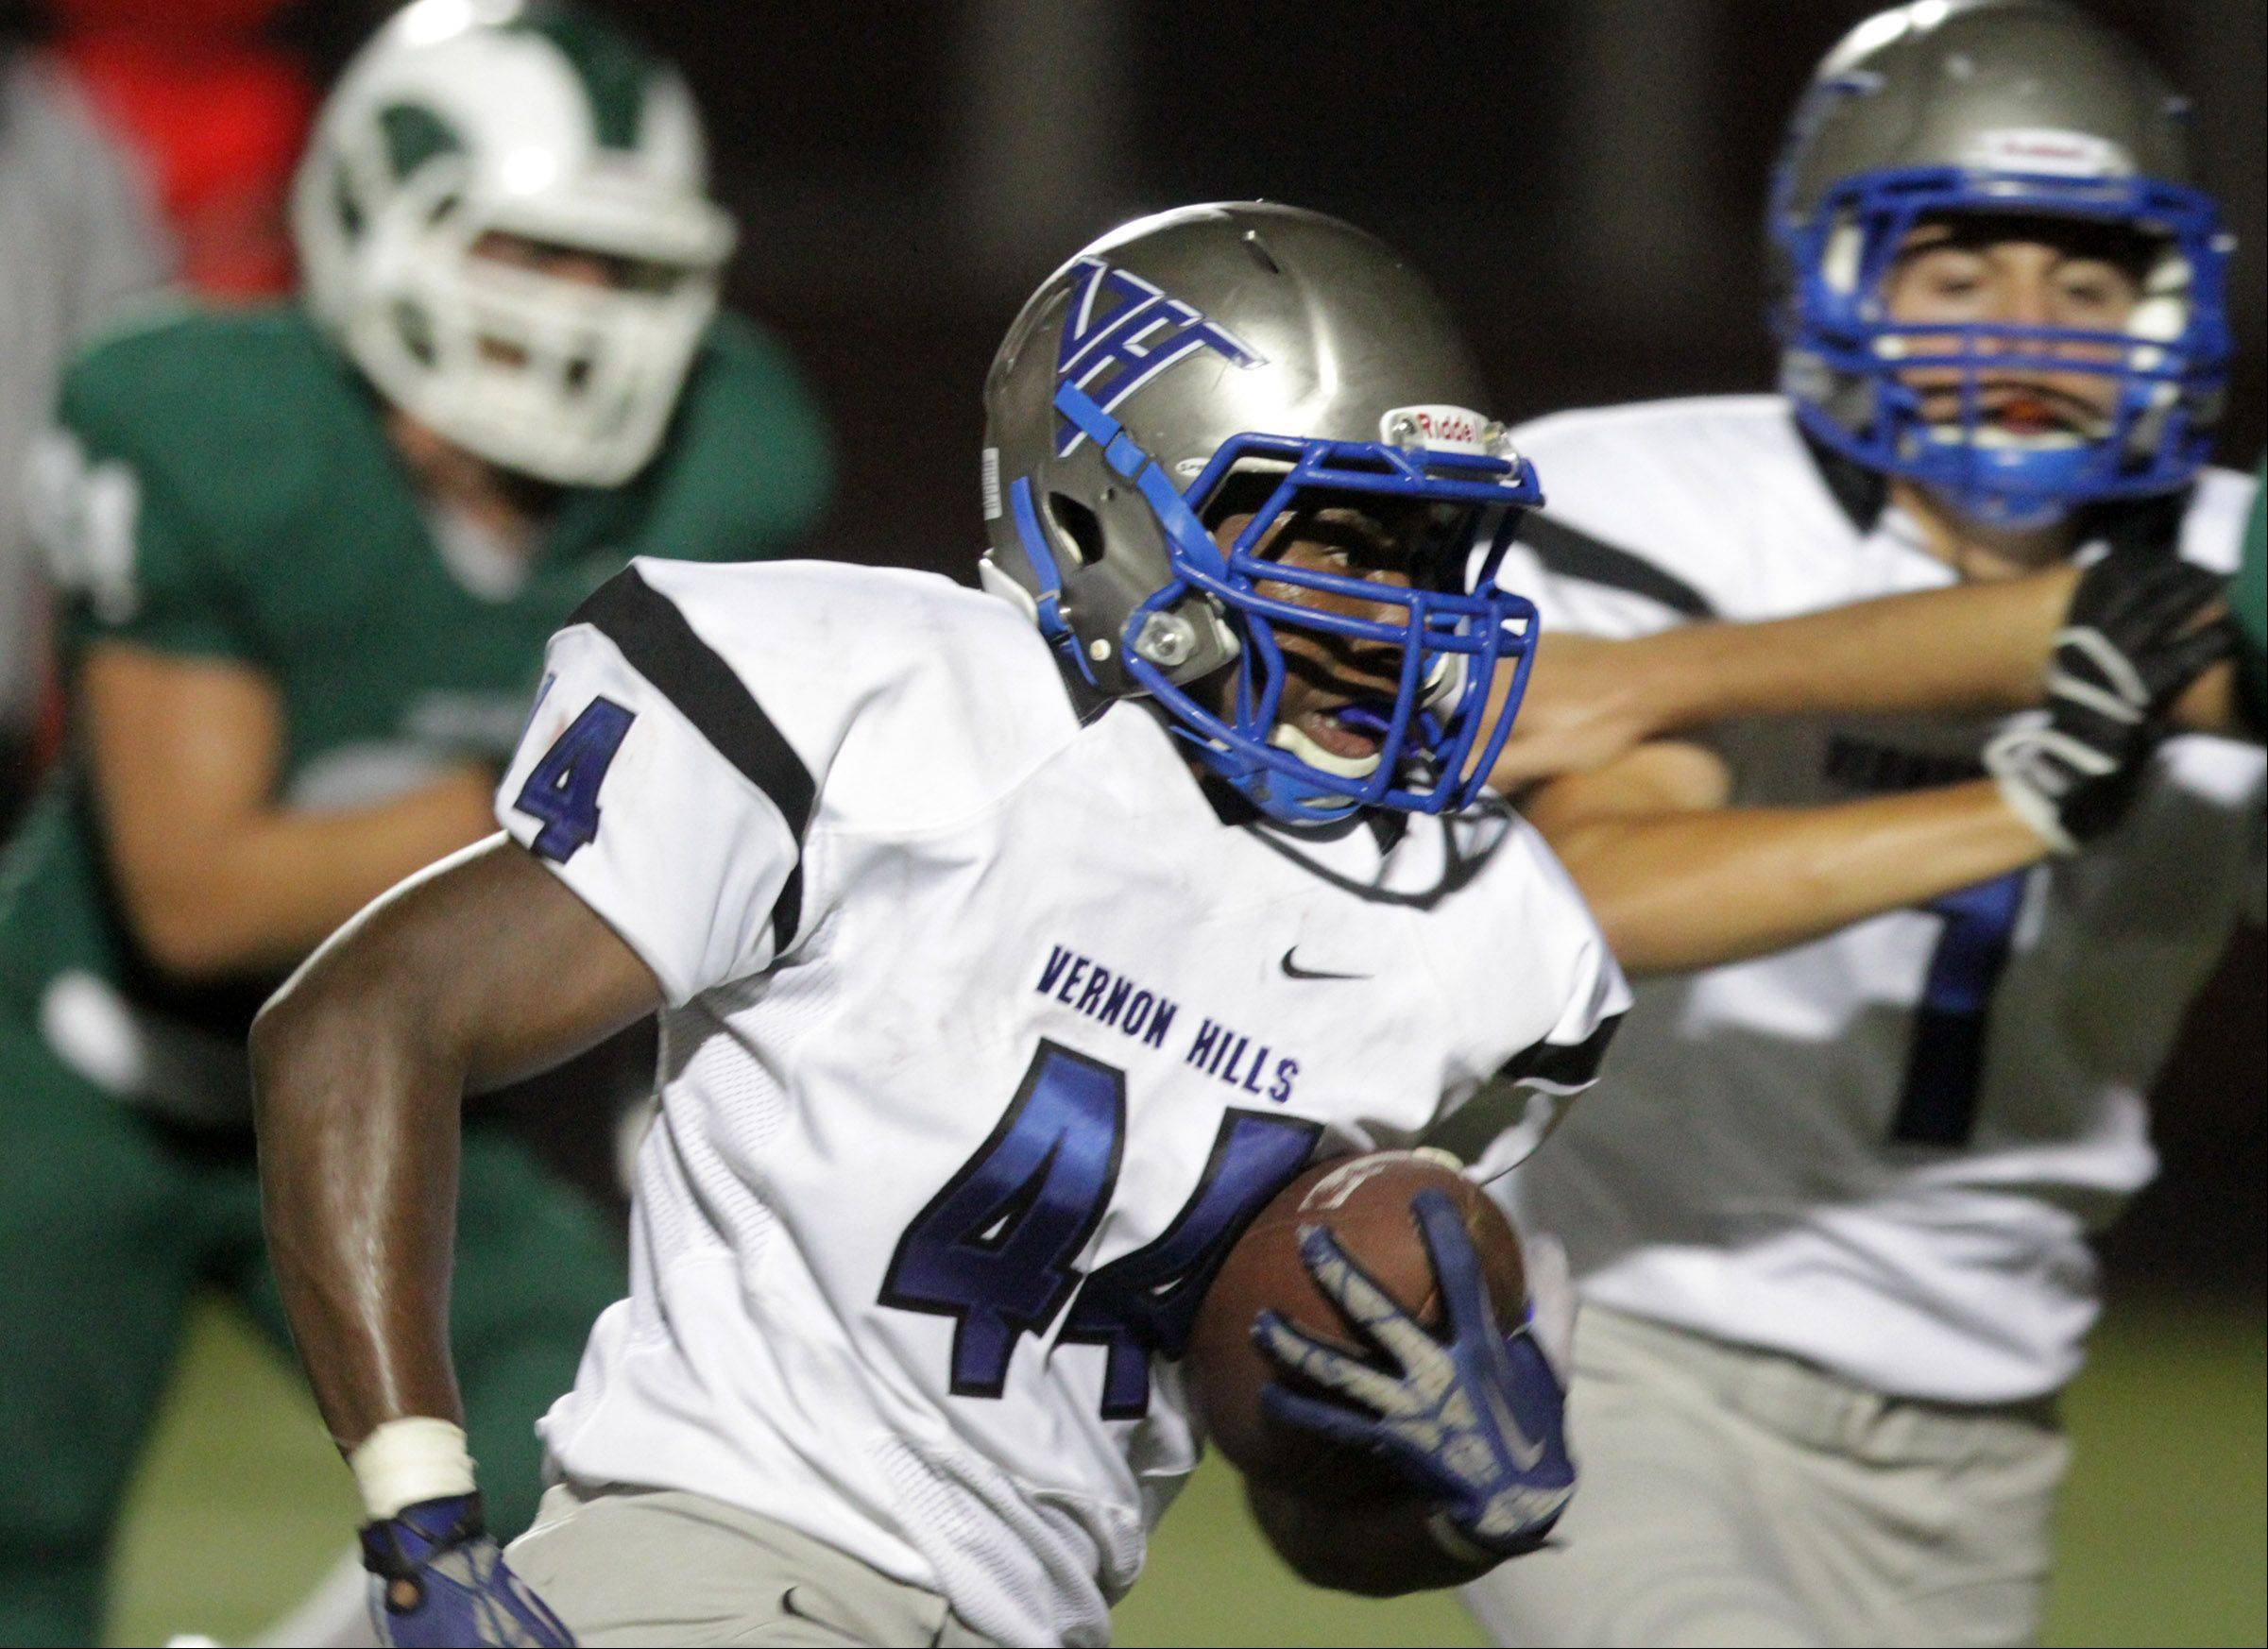 Vernon Hills running back Kyle Thomas runs the ball against Grayslake Central at Grayslake Central.